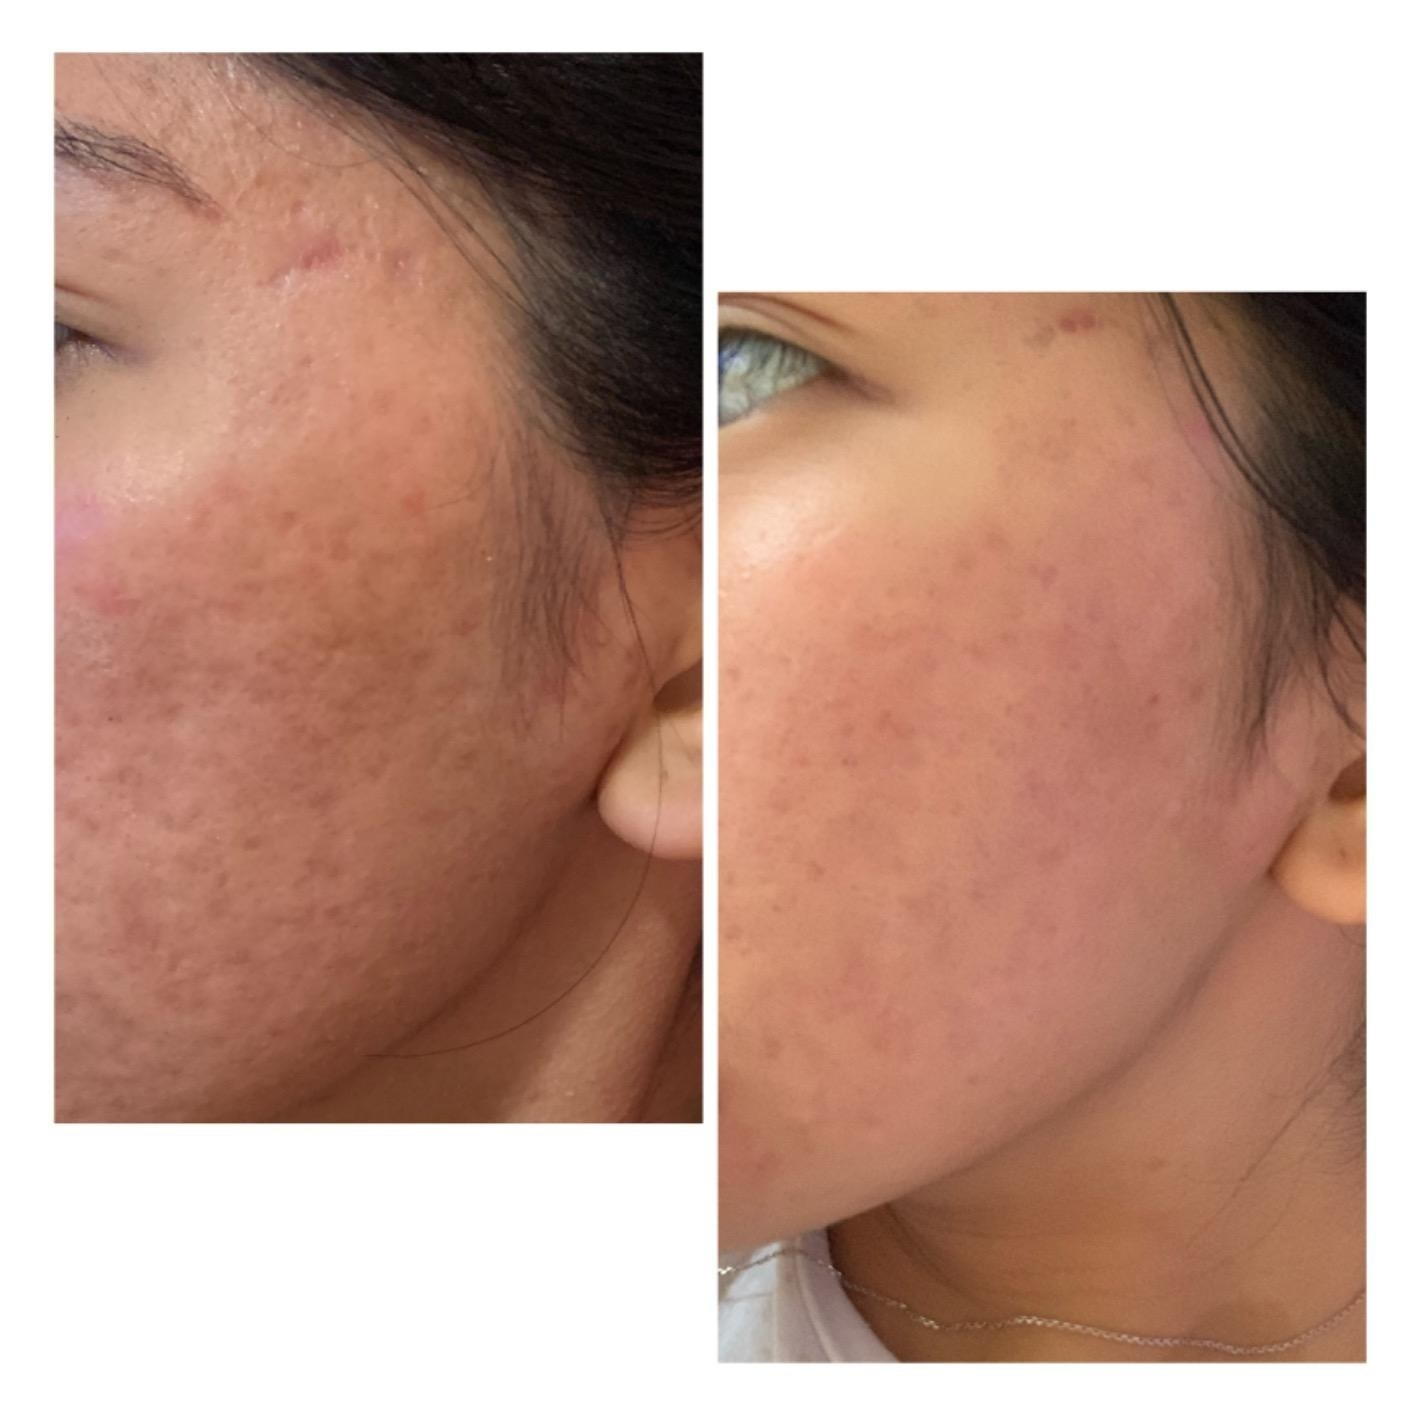 A reviewer's before/after with reduced texture and scarring